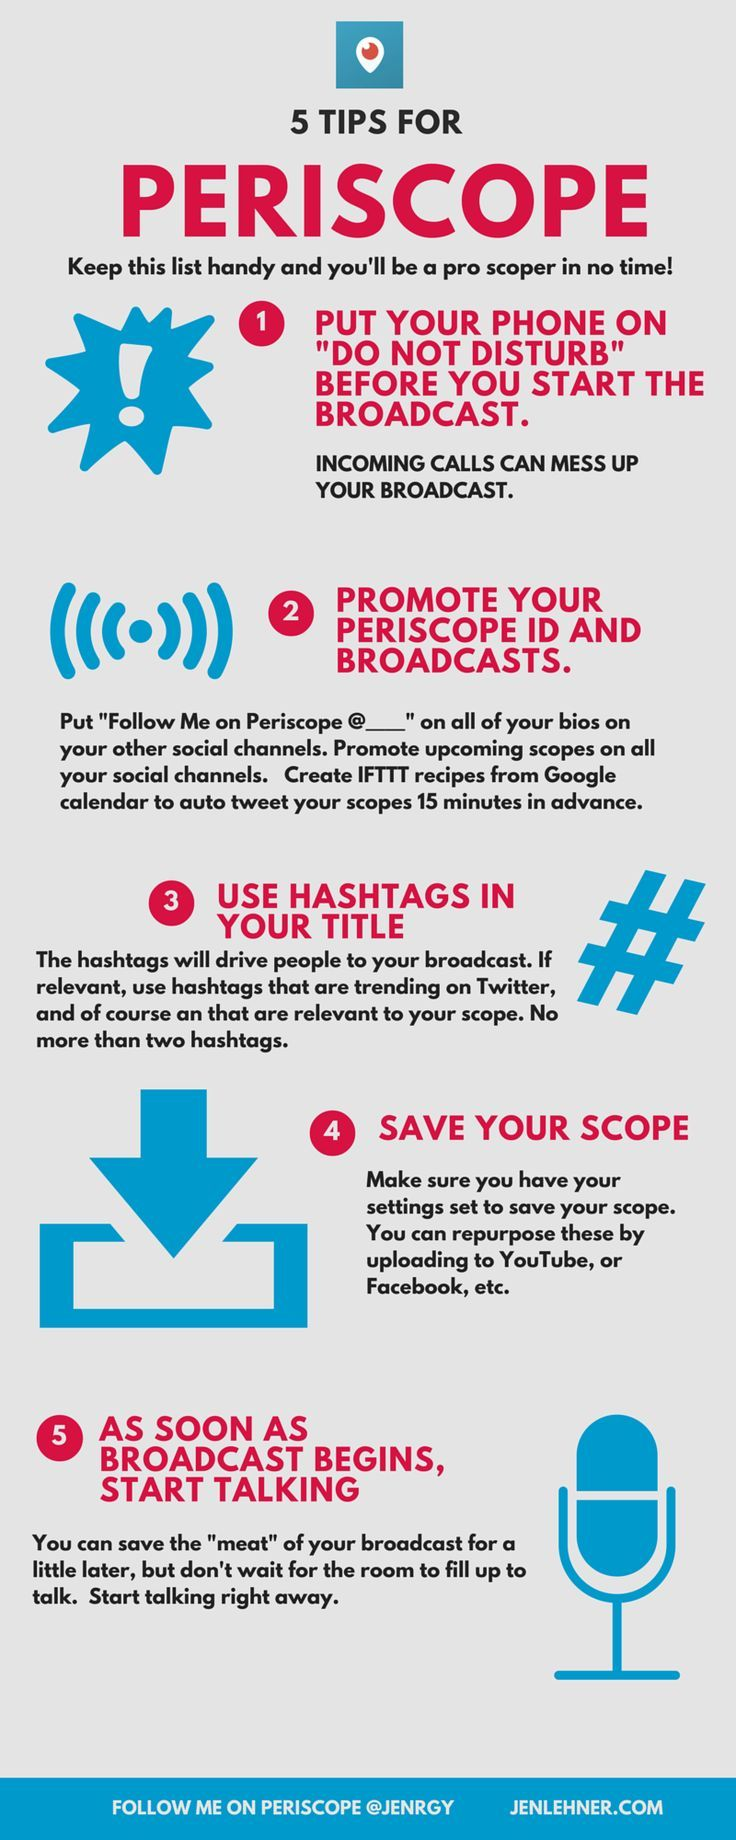 Periscope Tips - How to broadcast better and gain followers faster. Social media tips, social media marketing